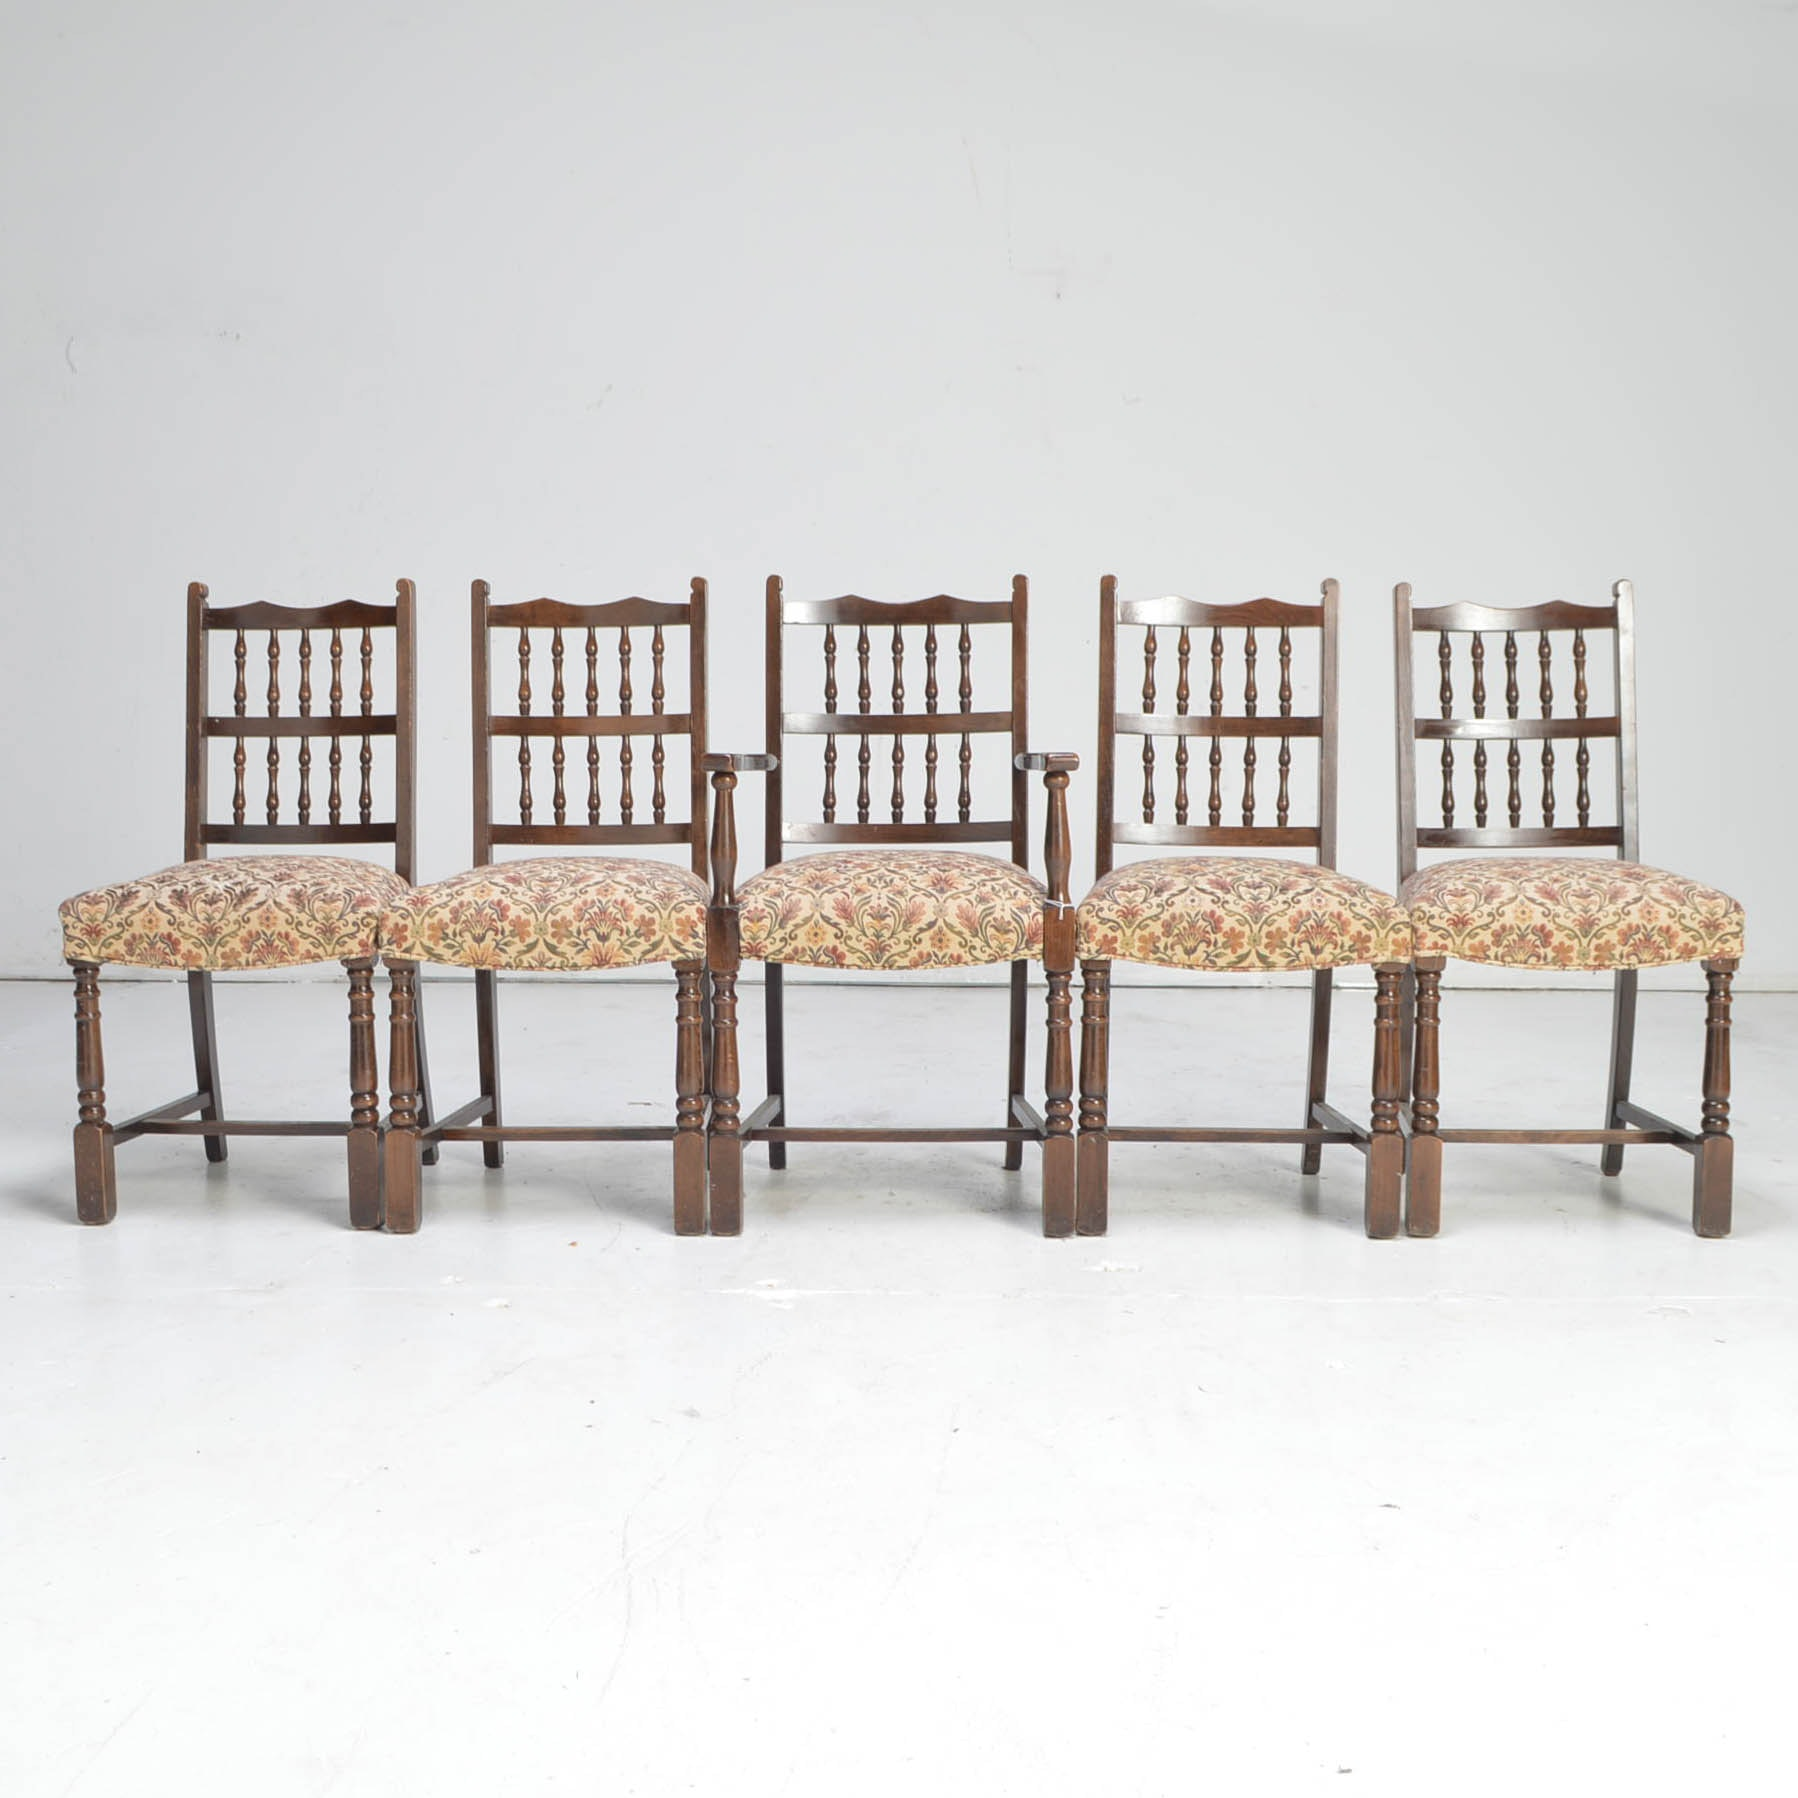 Vintage Walnut Dining Chairs with Upholstered Seats